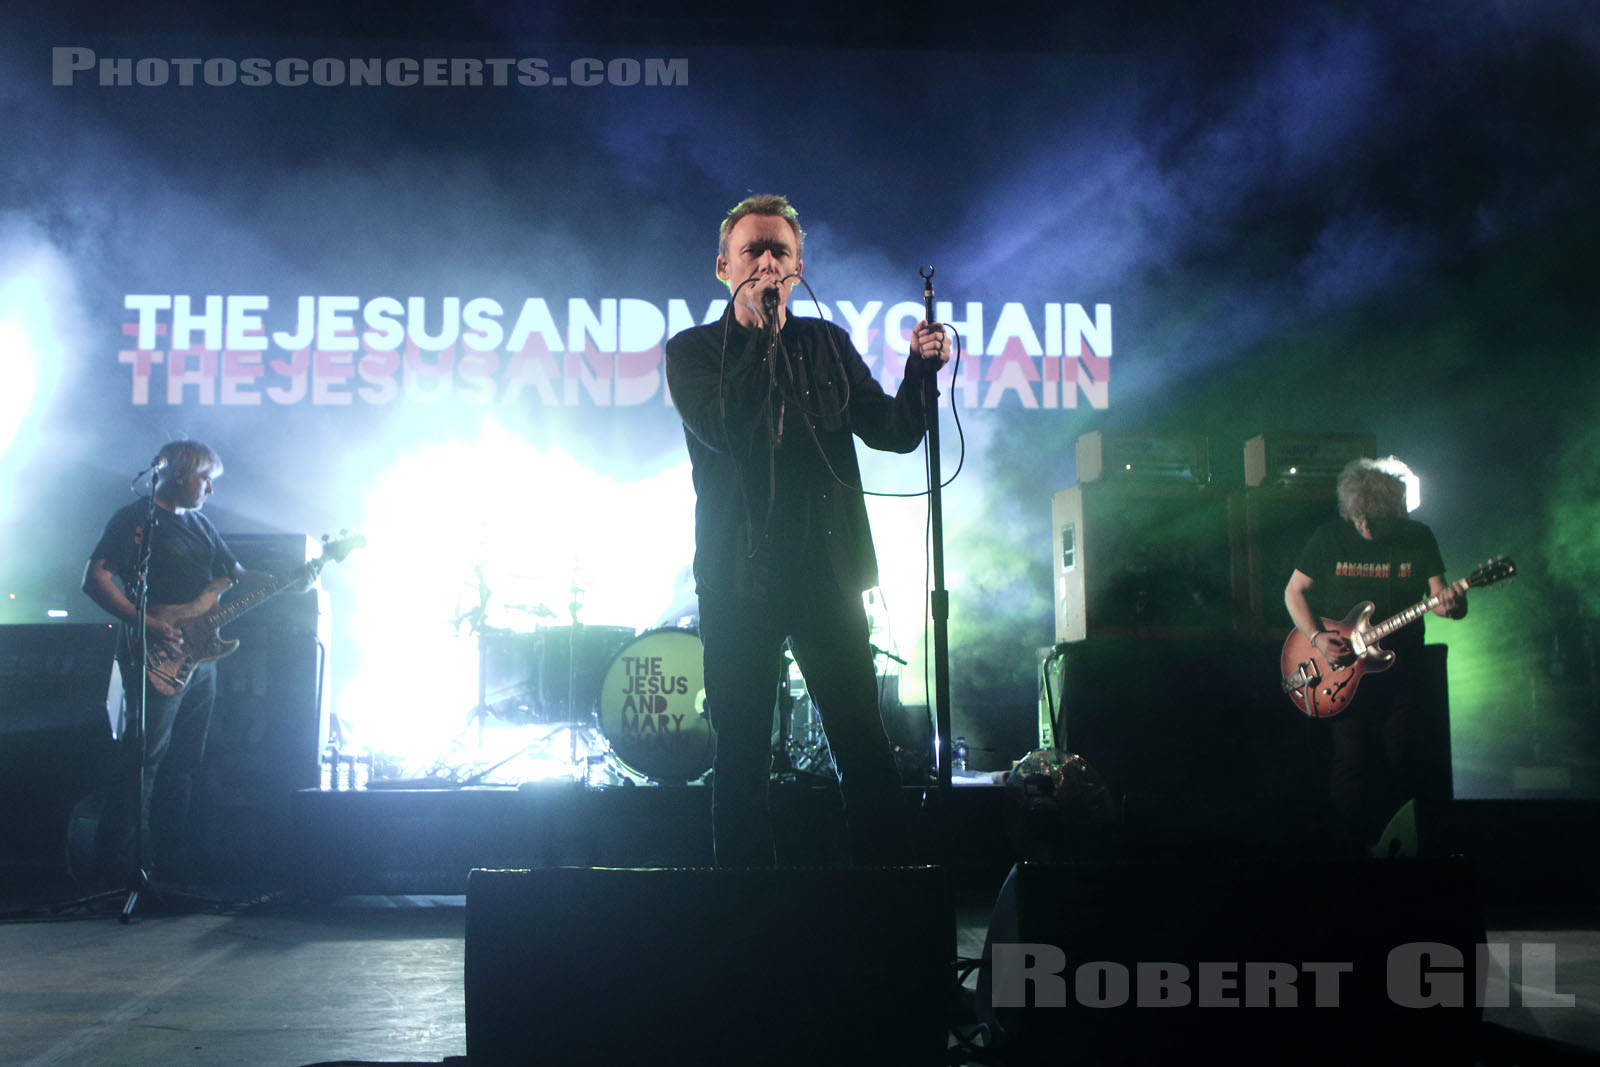 THE JESUS AND MARY CHAIN - 2018-06-01 - NIMES - Paloma - Flamingo